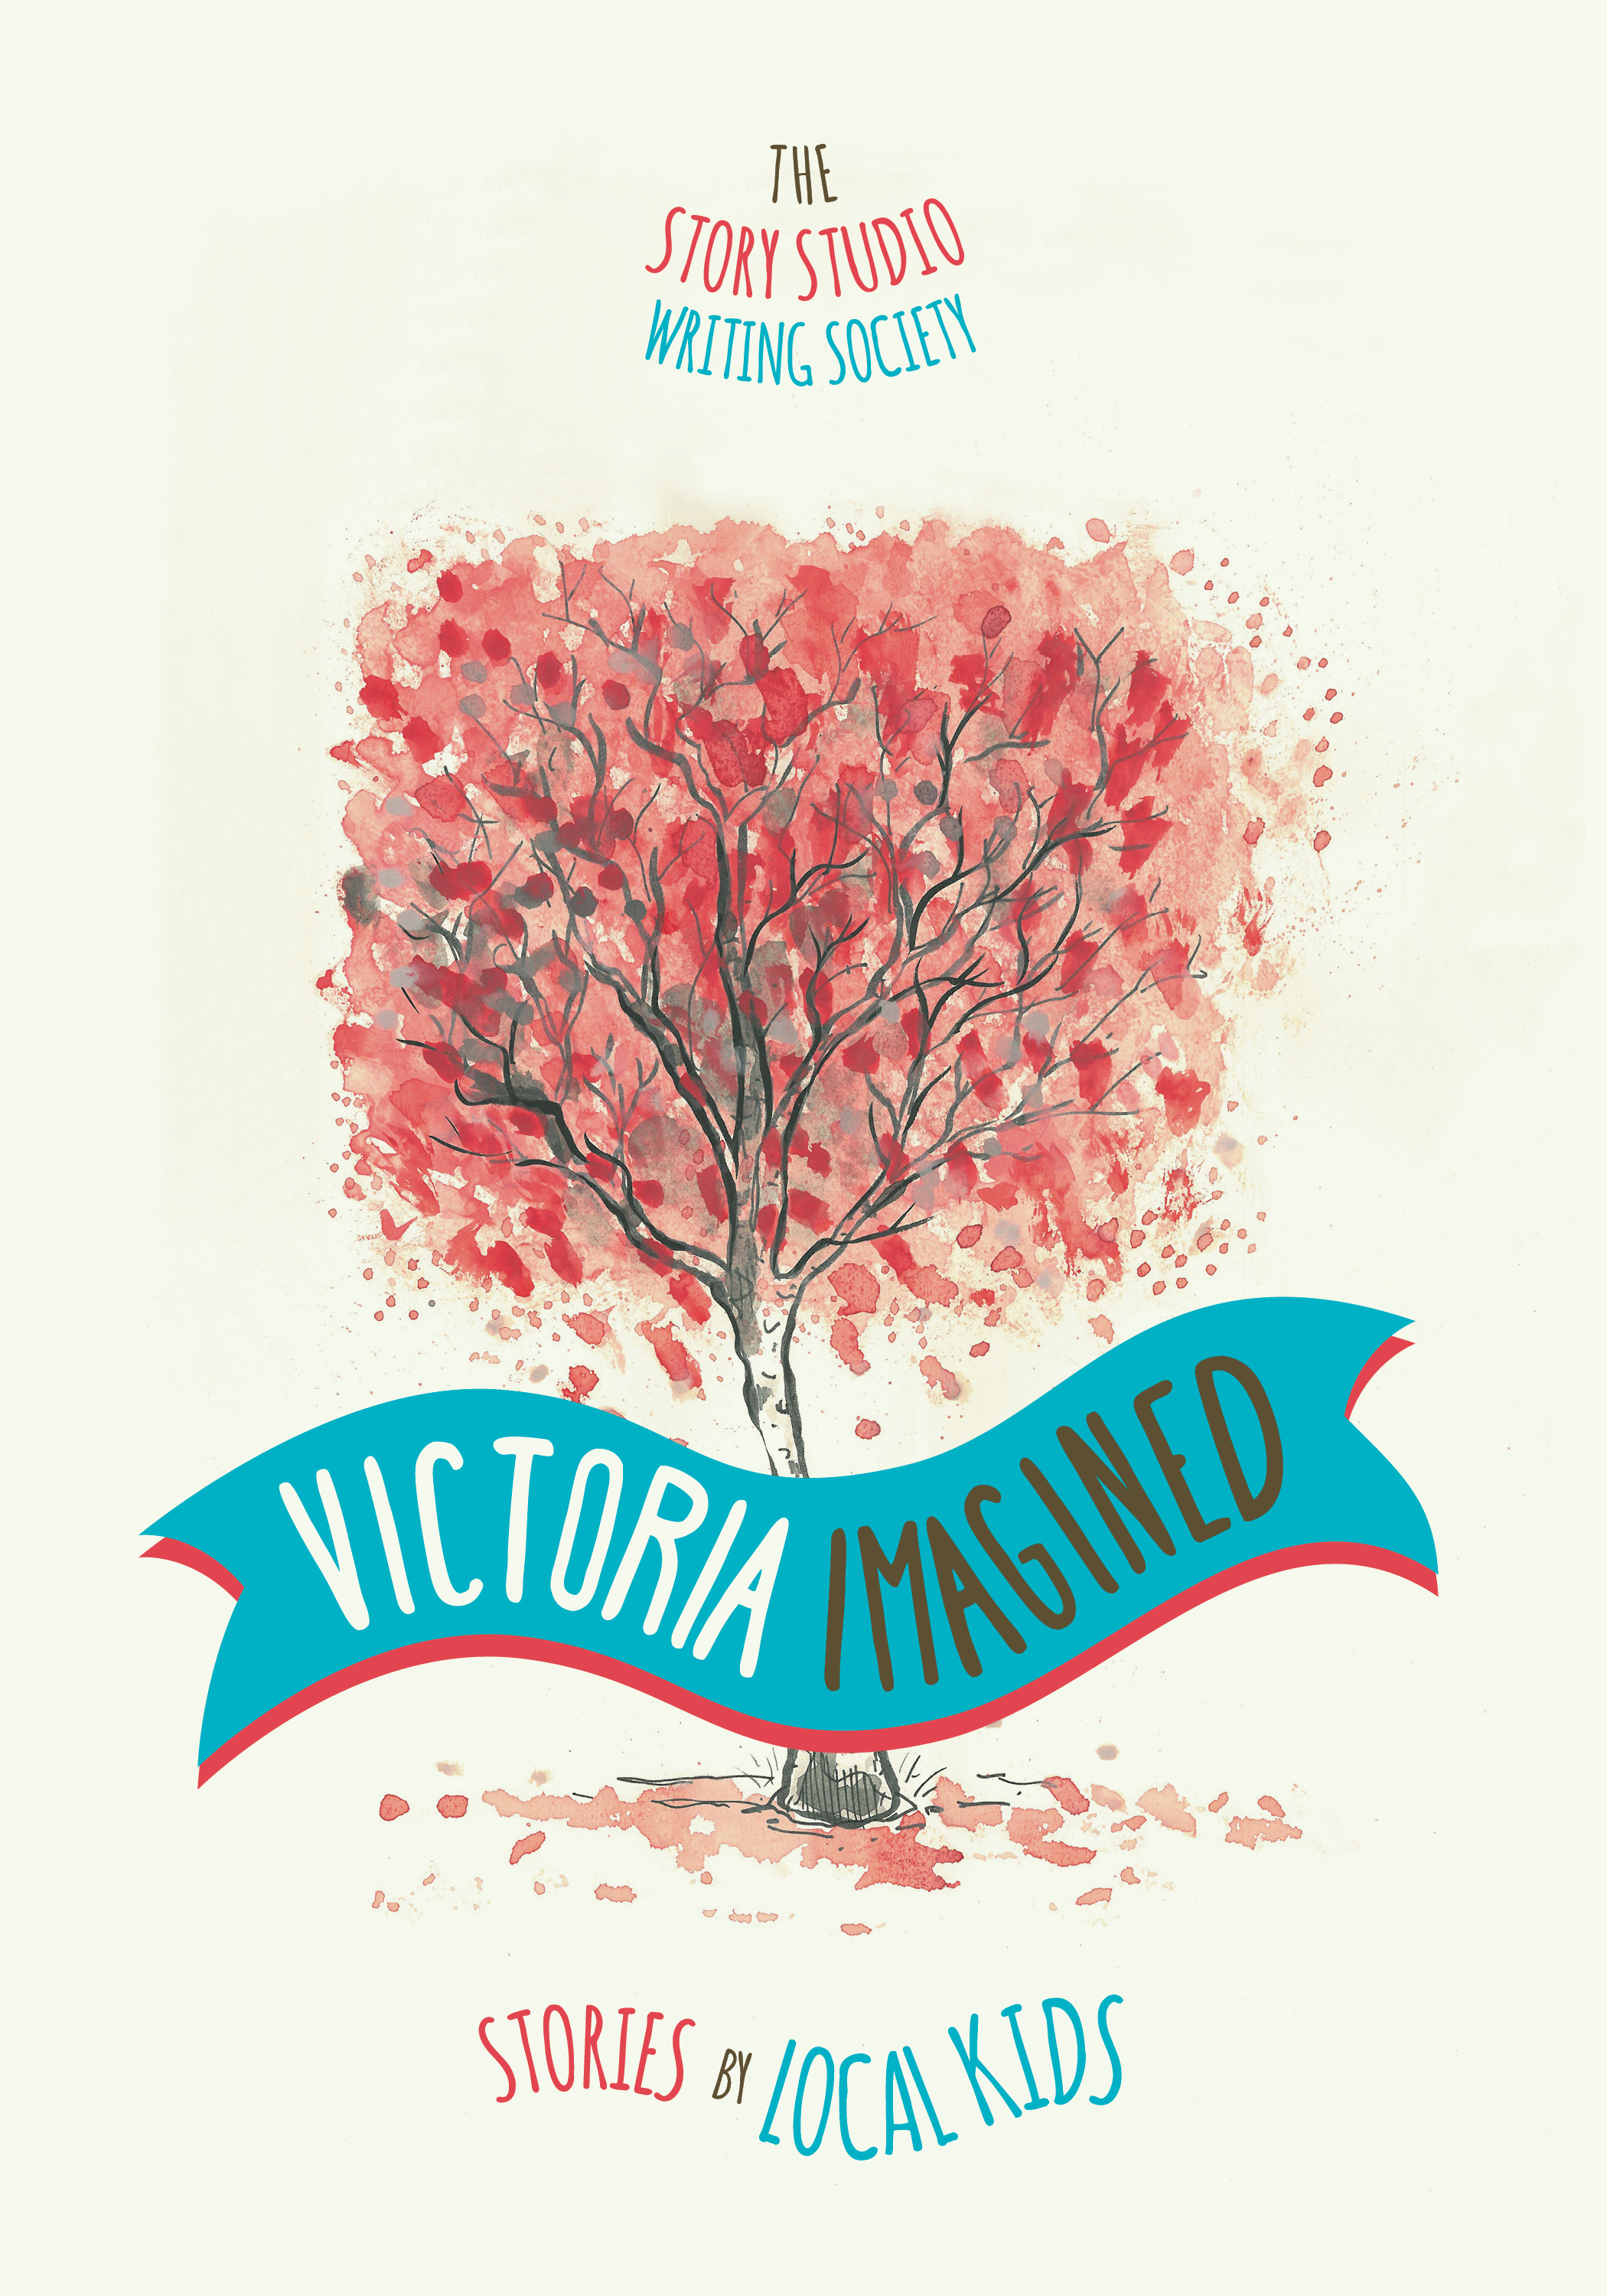 Victoria-Imagined-Stories-By-Local-Kids-book-cover